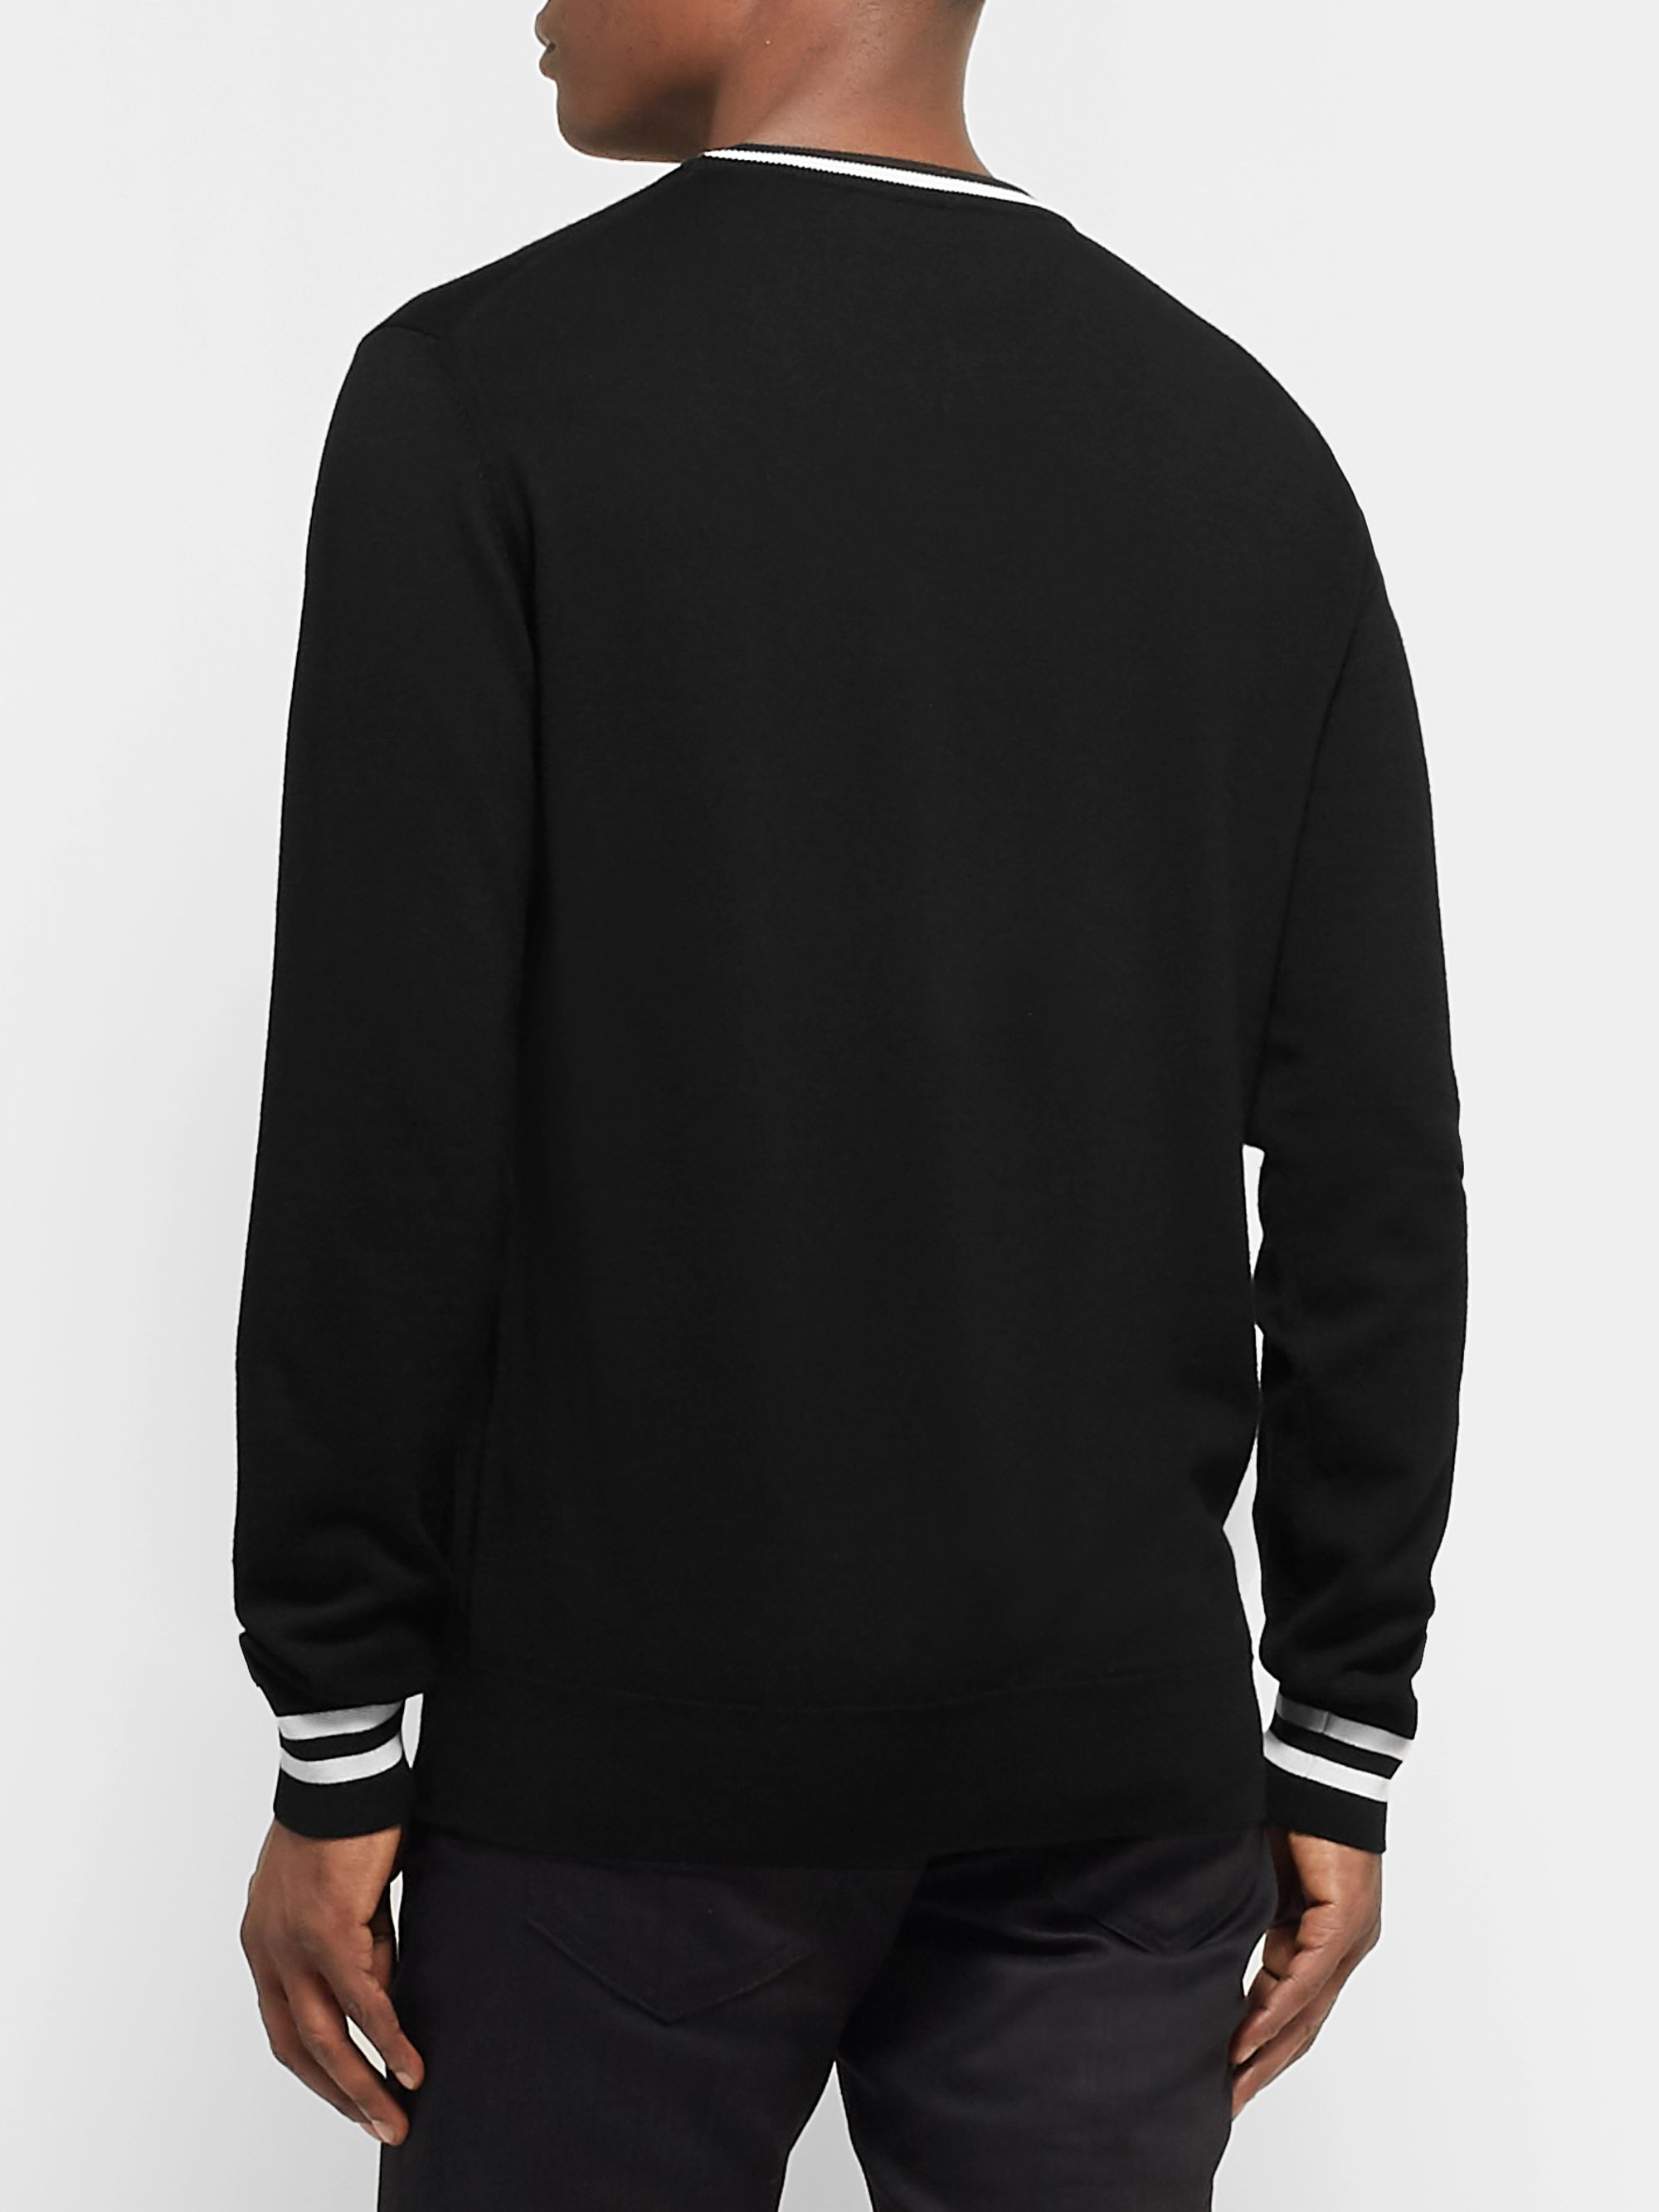 Dolce & Gabbana Slim-Fit Contrast-Tipped Logo-Embroidered Virgin Wool Sweater